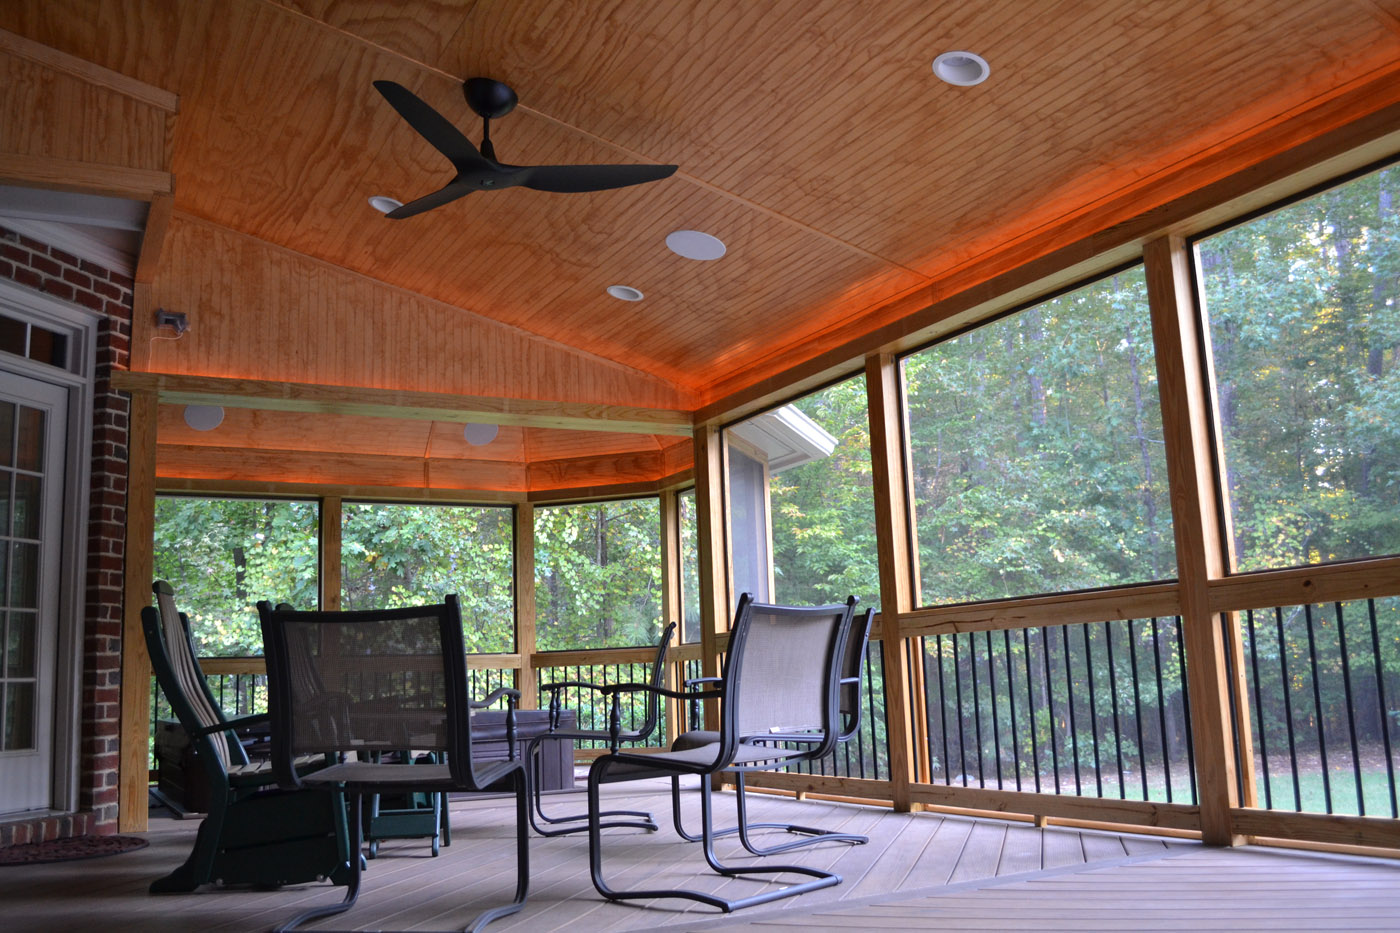 Archadeck of raleigh durham and earthstone recycled for Shed roof screened porch